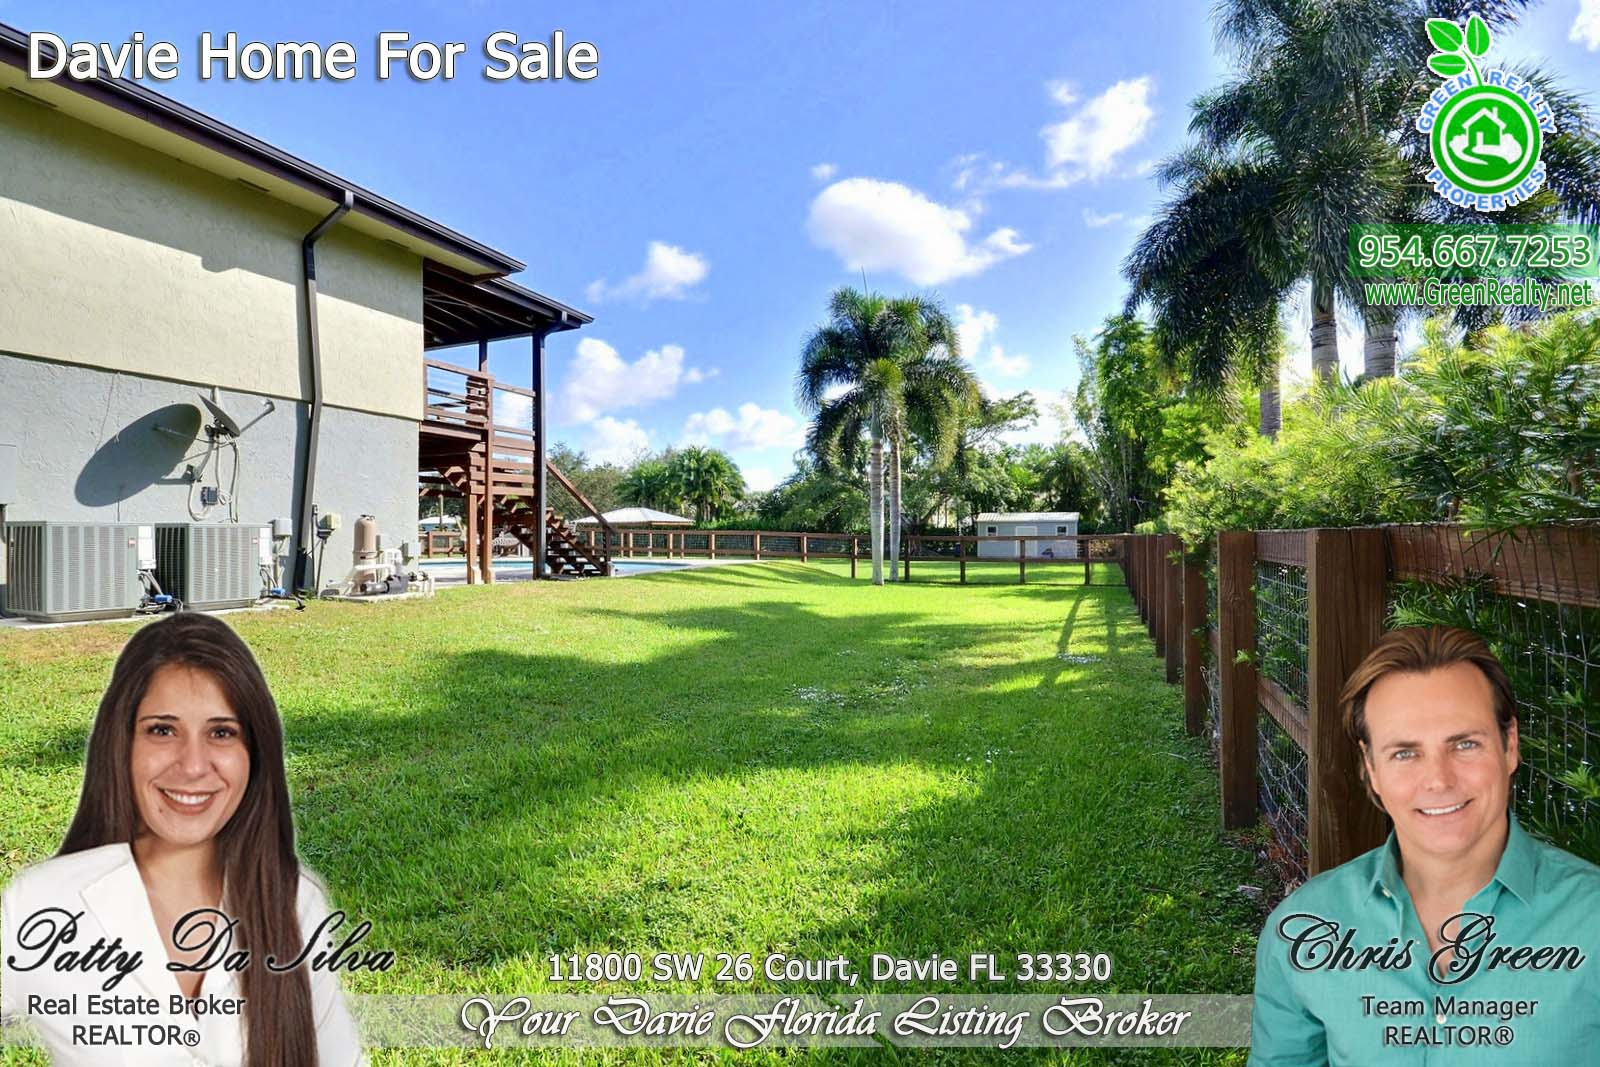 60 Homes For Sale in Davie Florida (4)